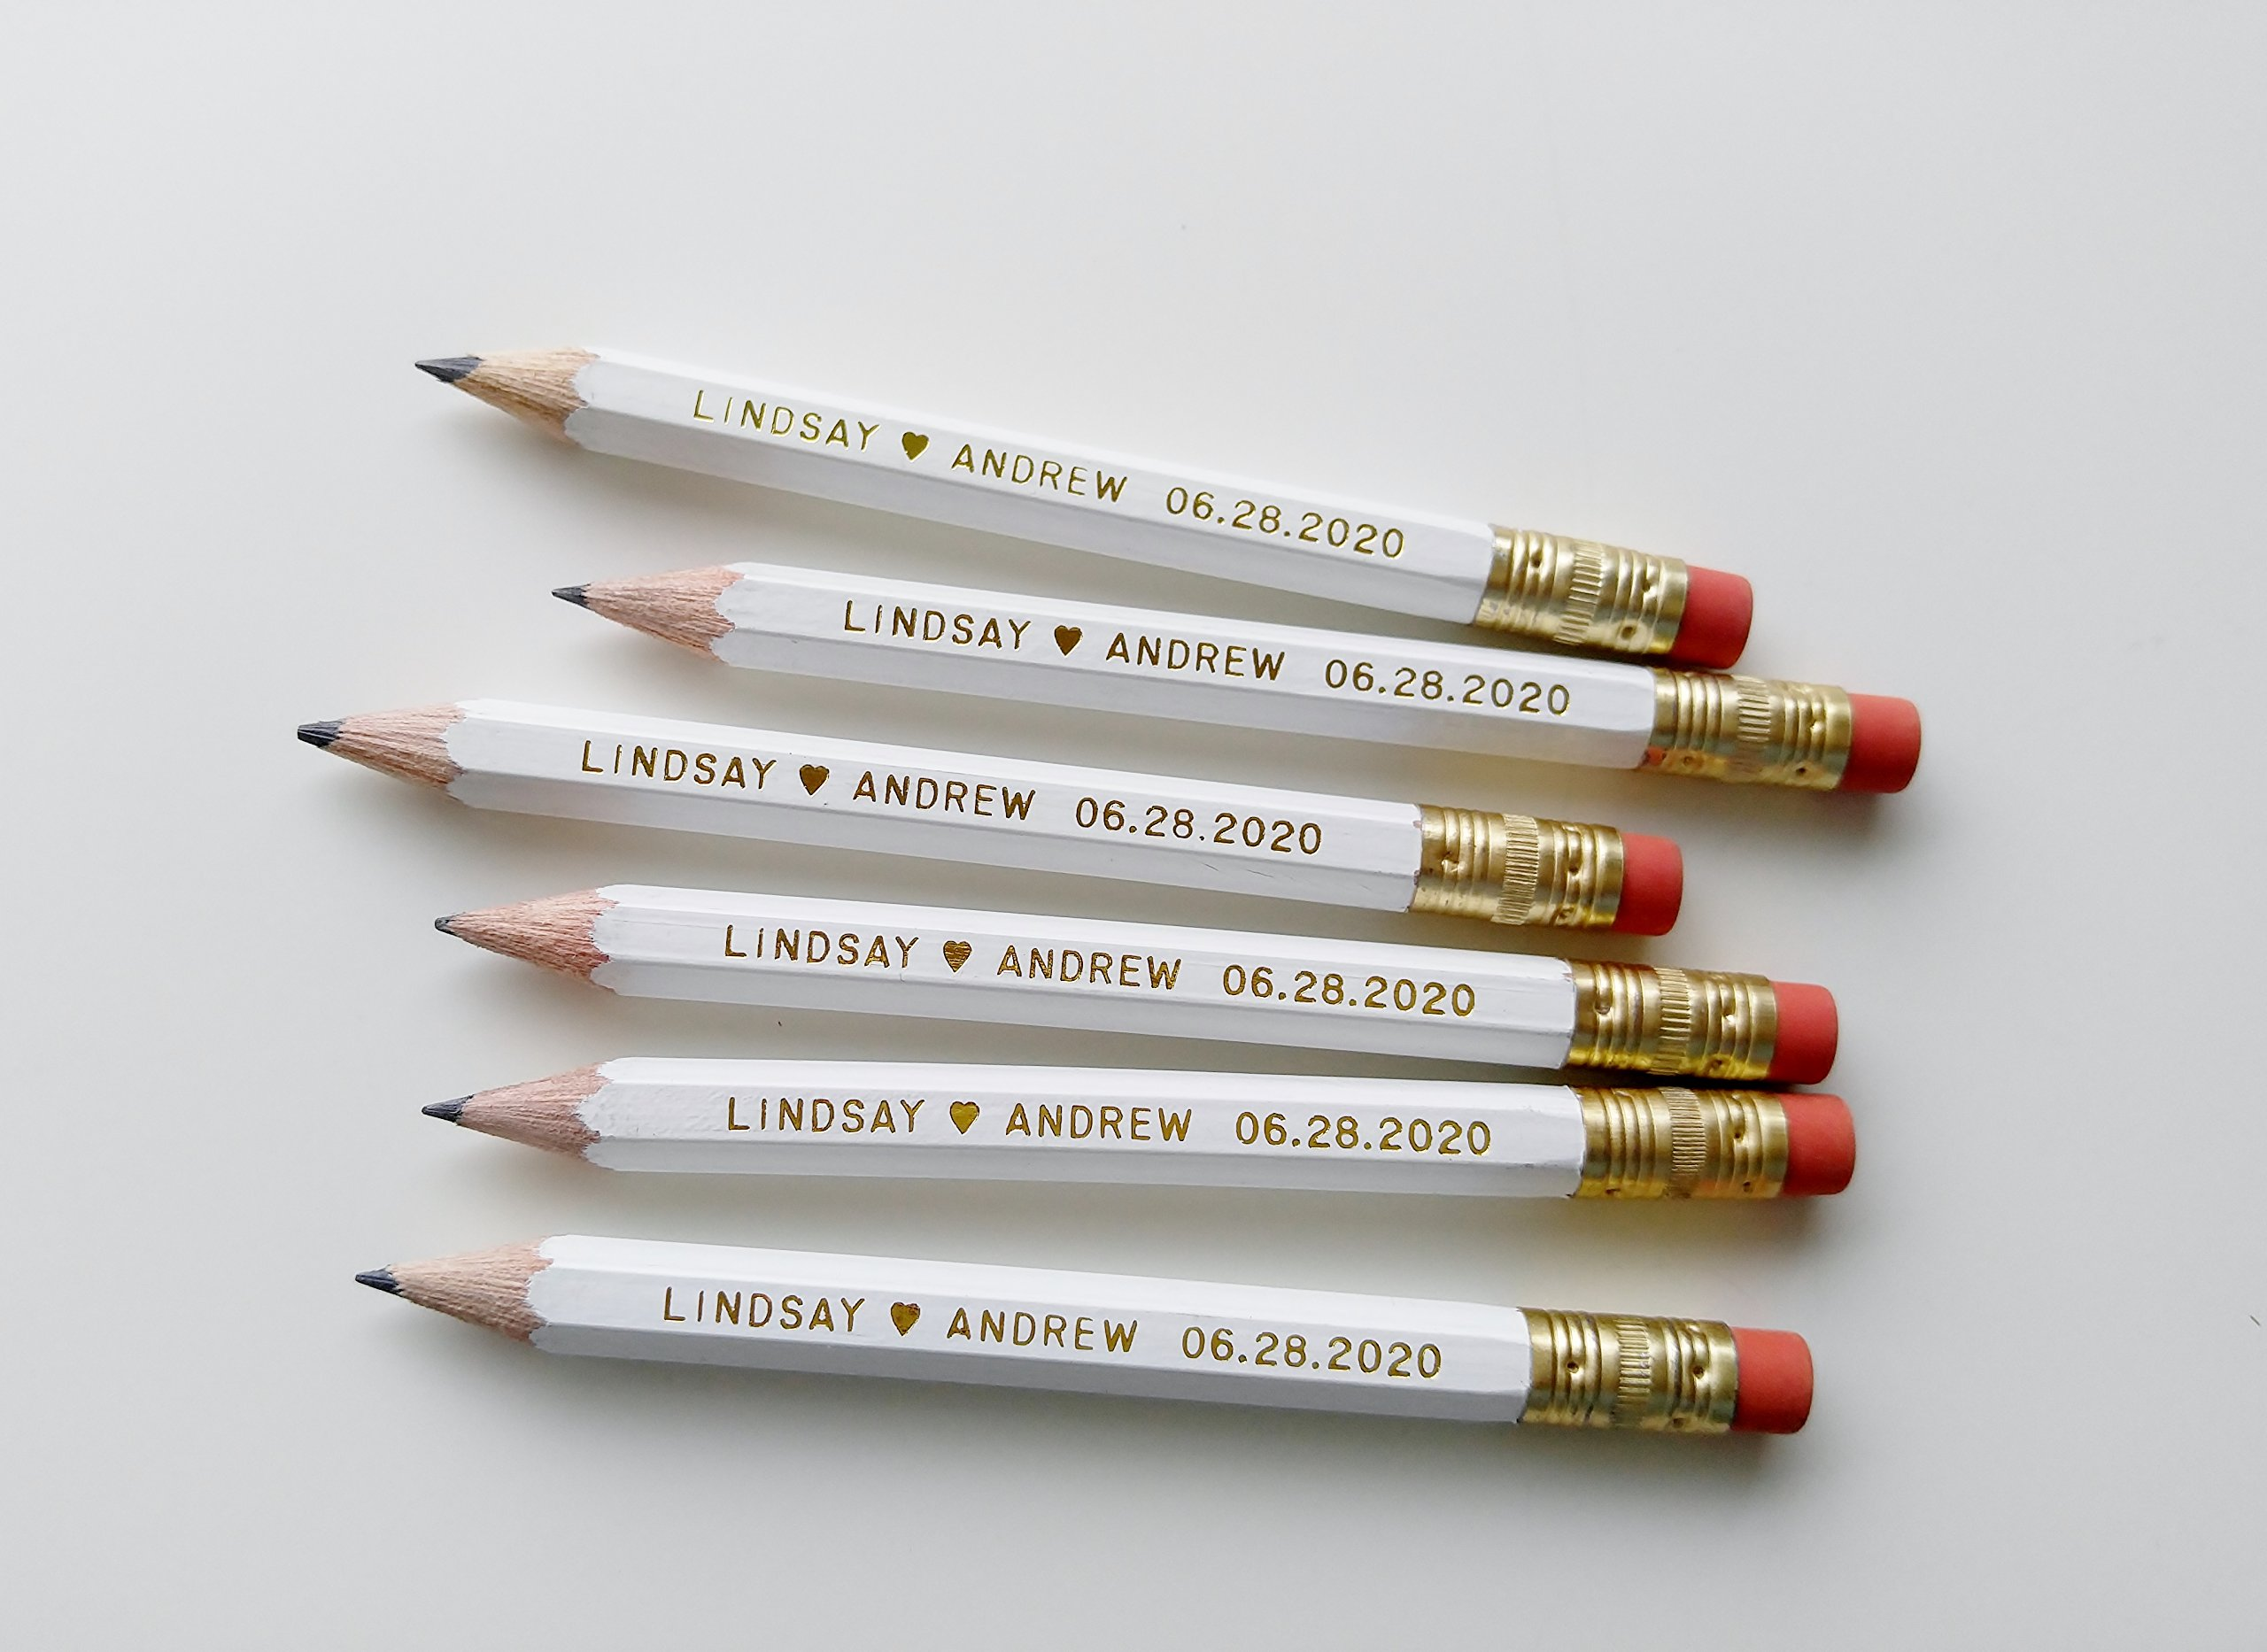 Save The Date Pencil Us In SET OF 48 Personalized Wedding Save the Date Pencils Custom Wedding Pencils Many Color Options